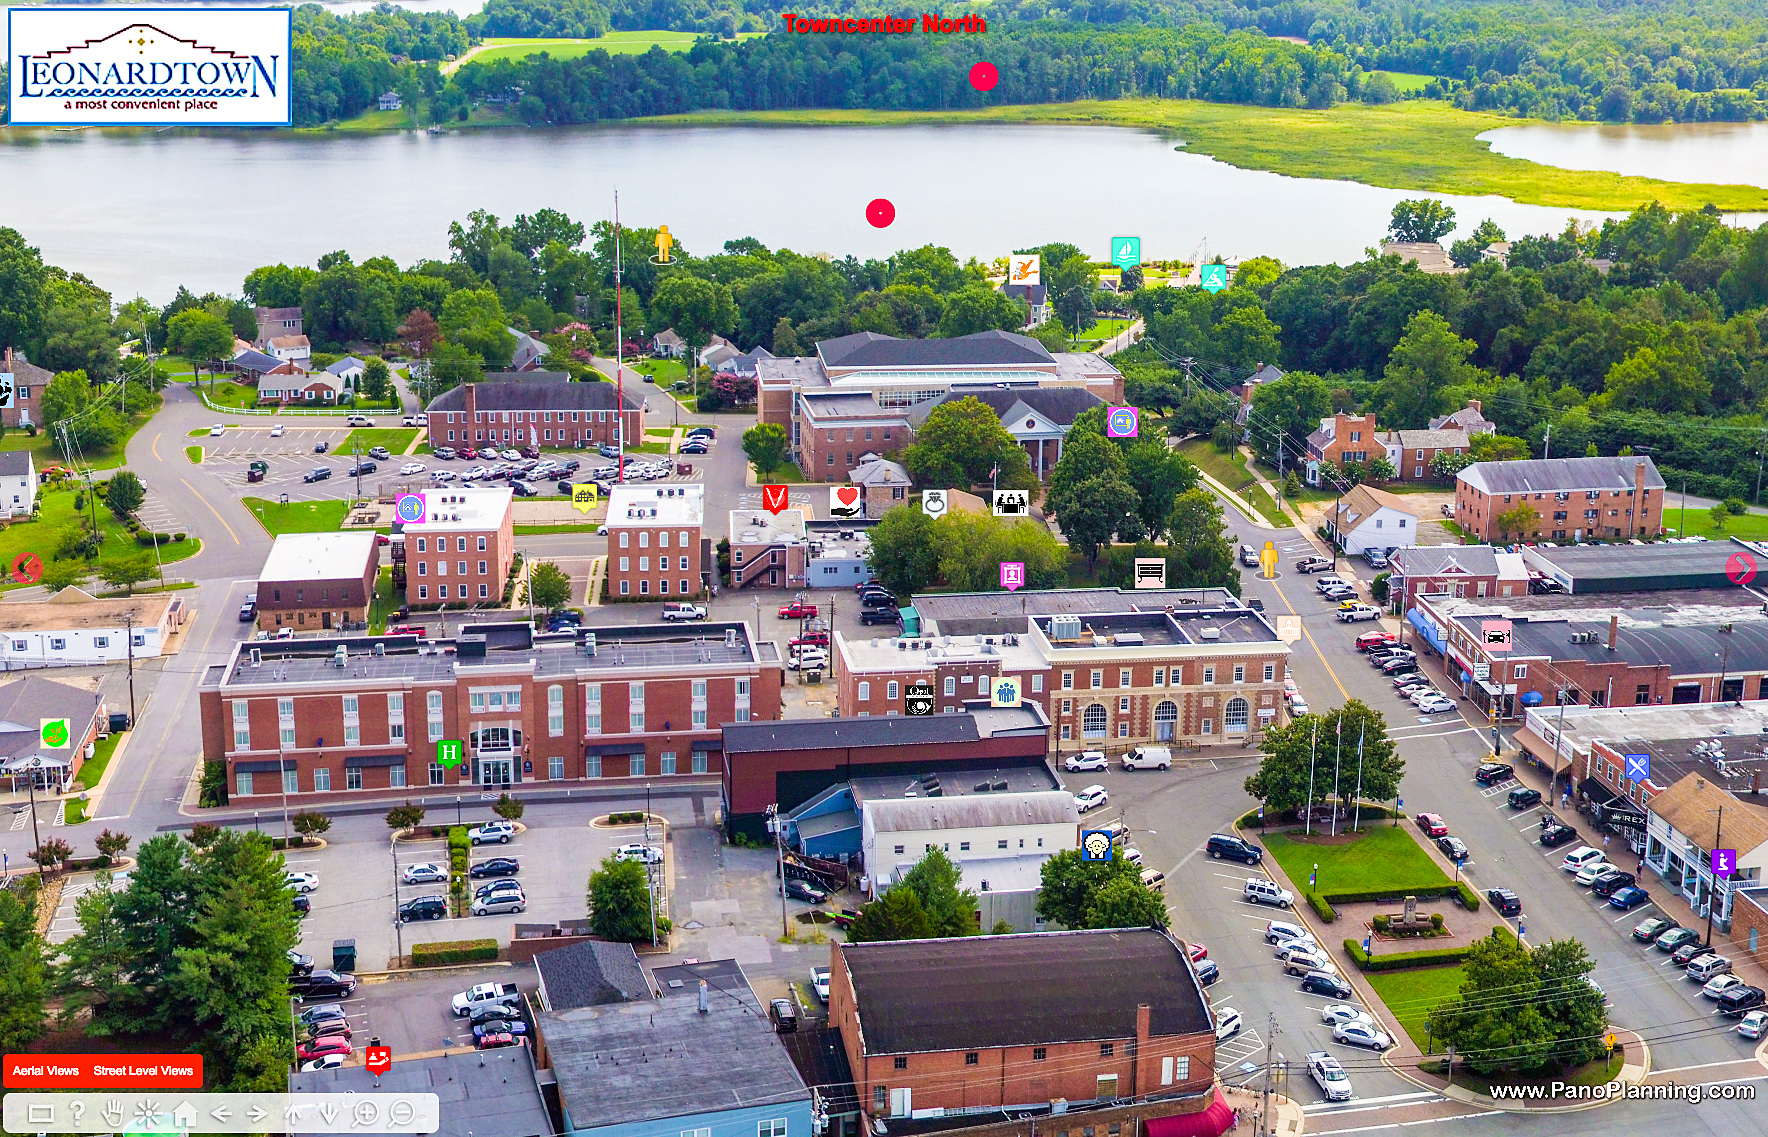 Aerial view of Towncenter of Leonardtown, MD.